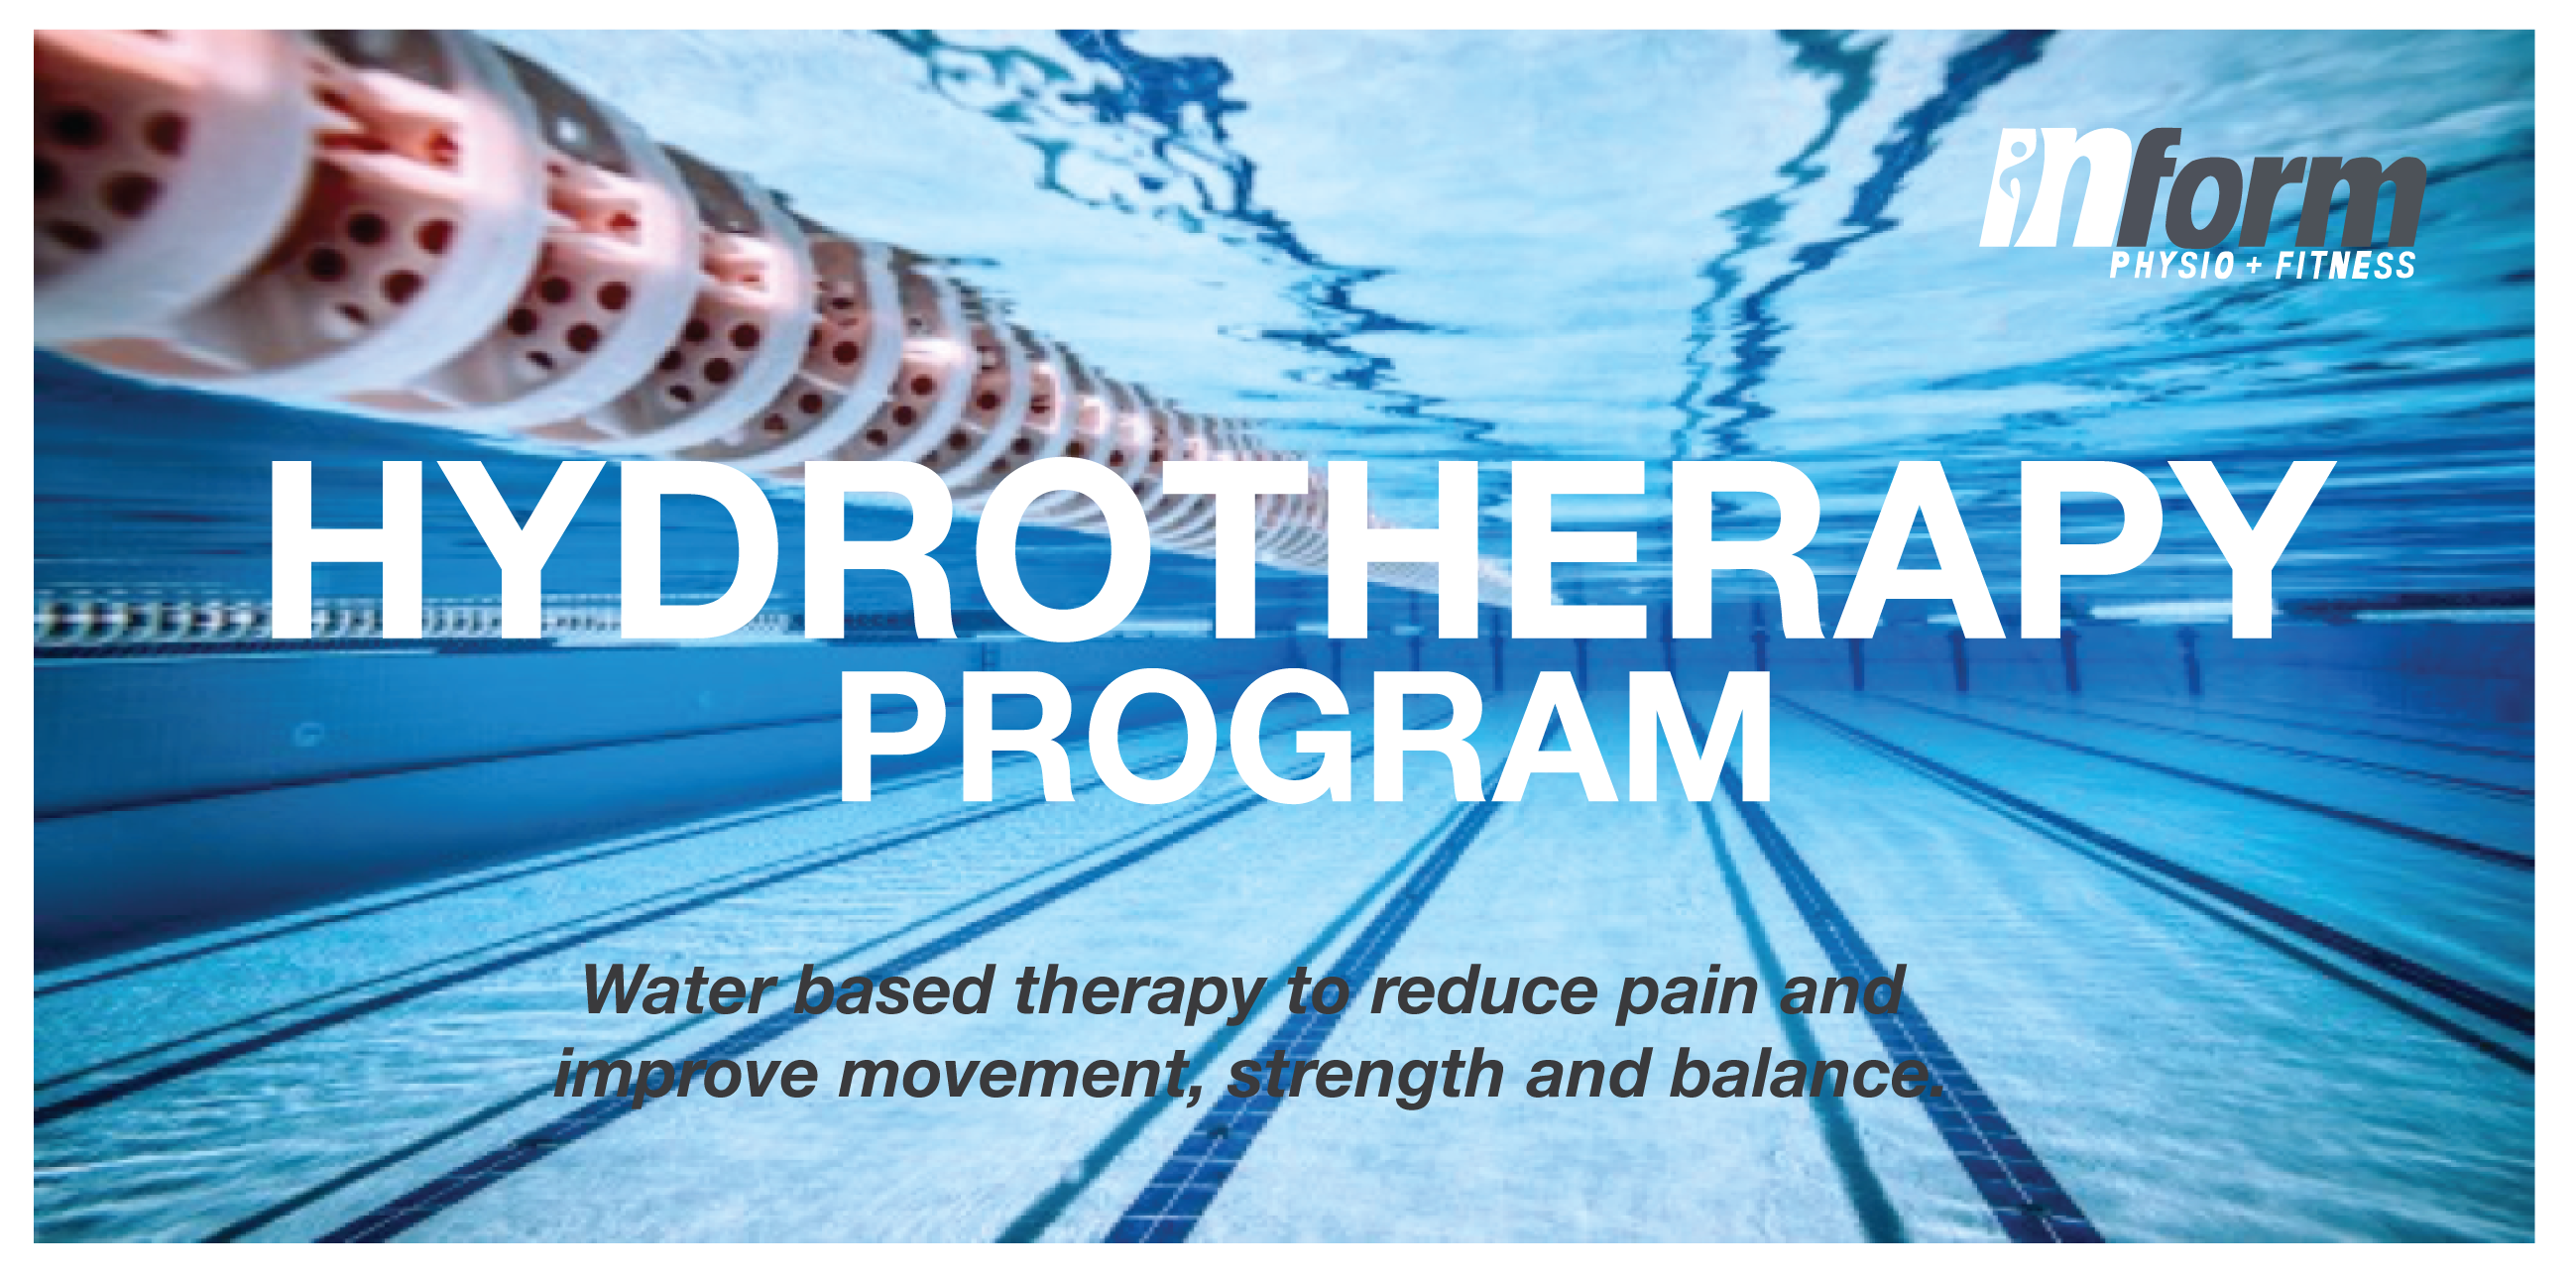 hydrotherapy-brochure-dl-01